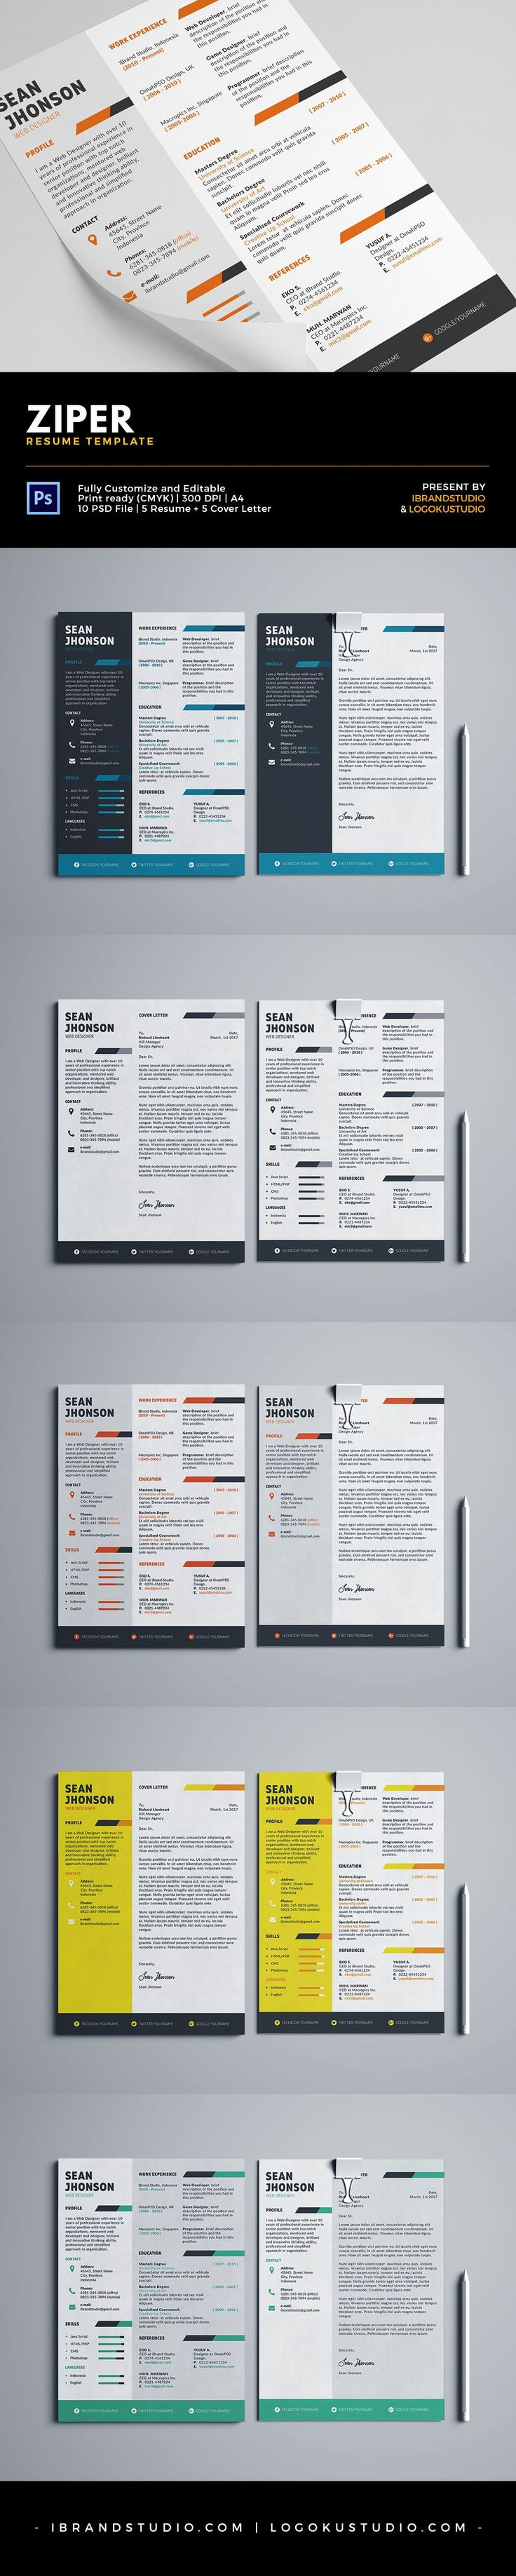 Chronological Resume Samples%0A Free Ziper Resume Template and Cover Letter  PSD